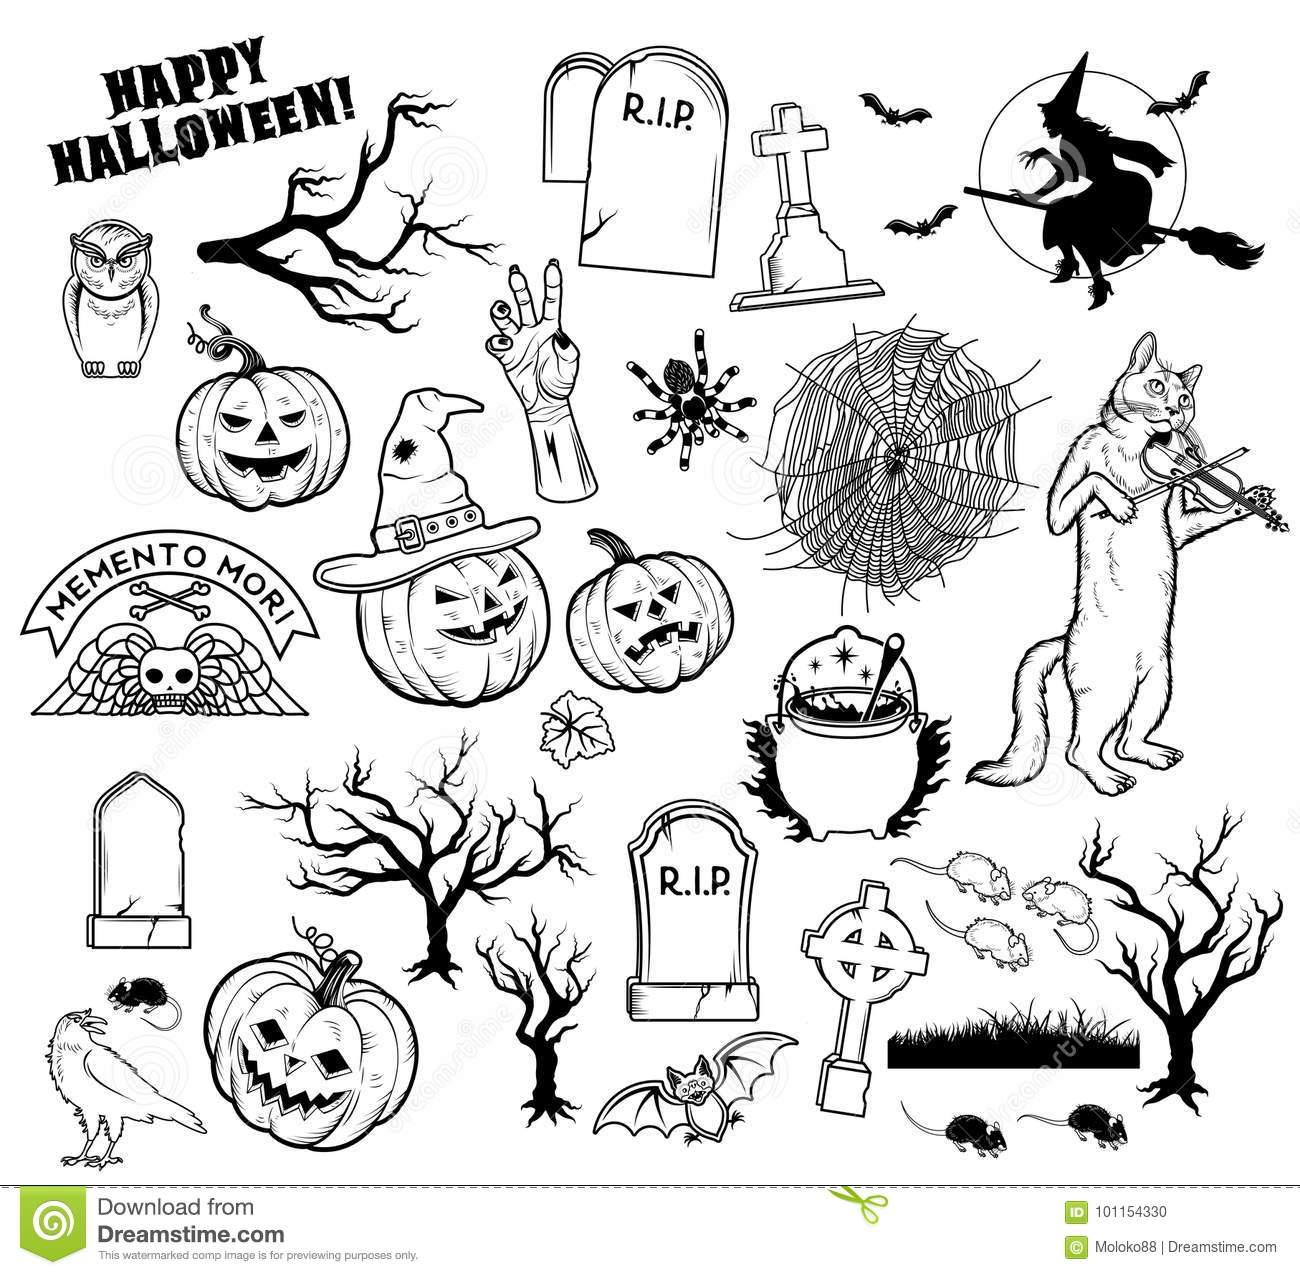 coloring book halloween characters vector illustration. Black Bedroom Furniture Sets. Home Design Ideas